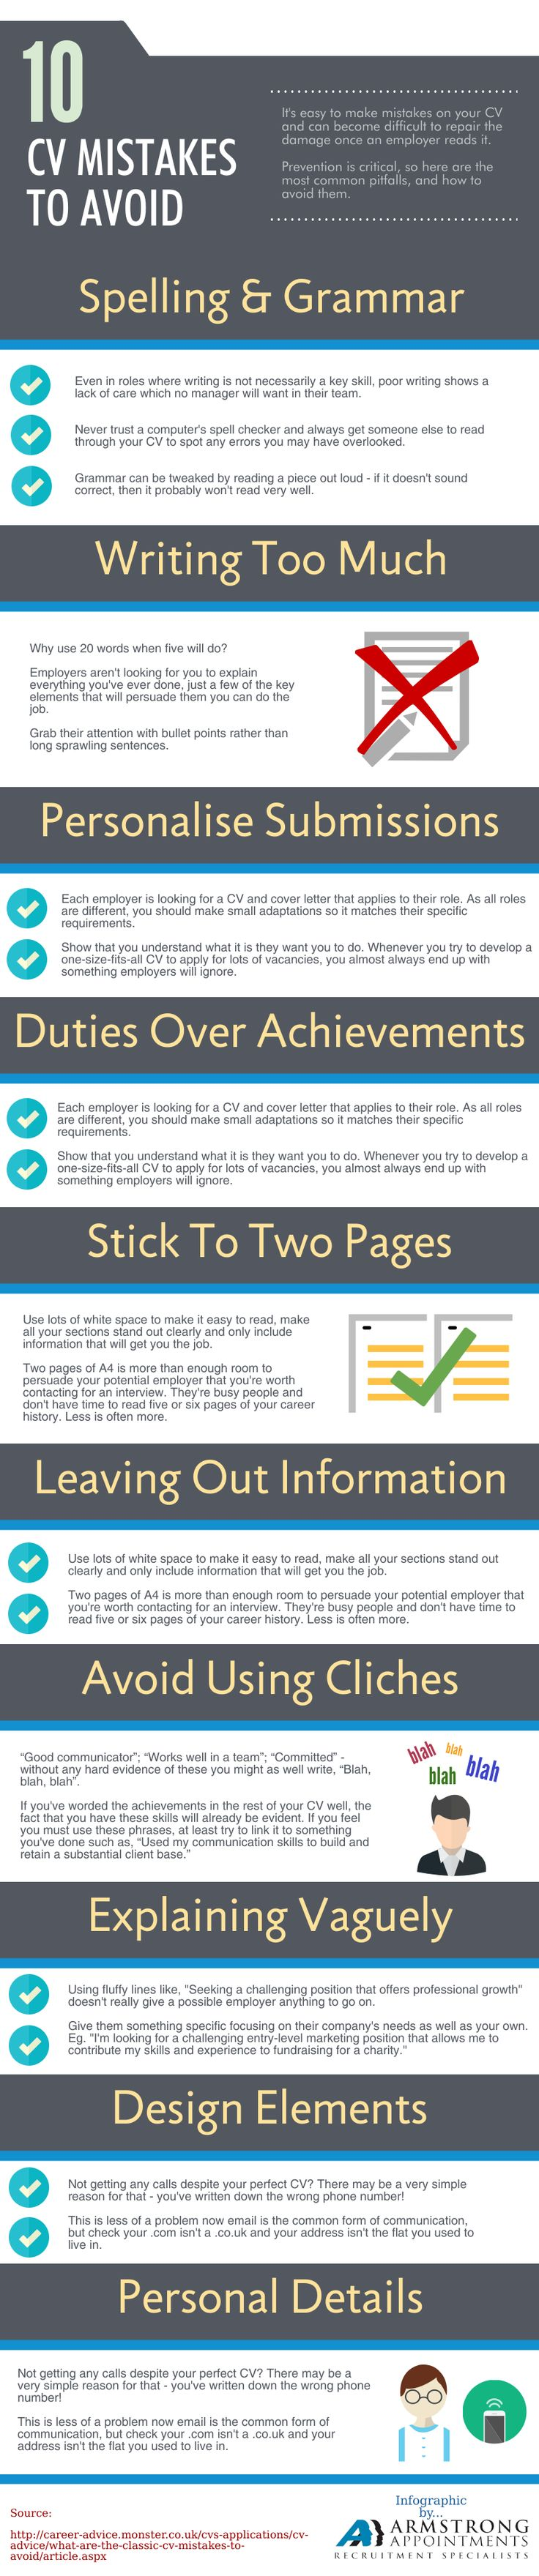 10 resume mistakes to avoid in 2018